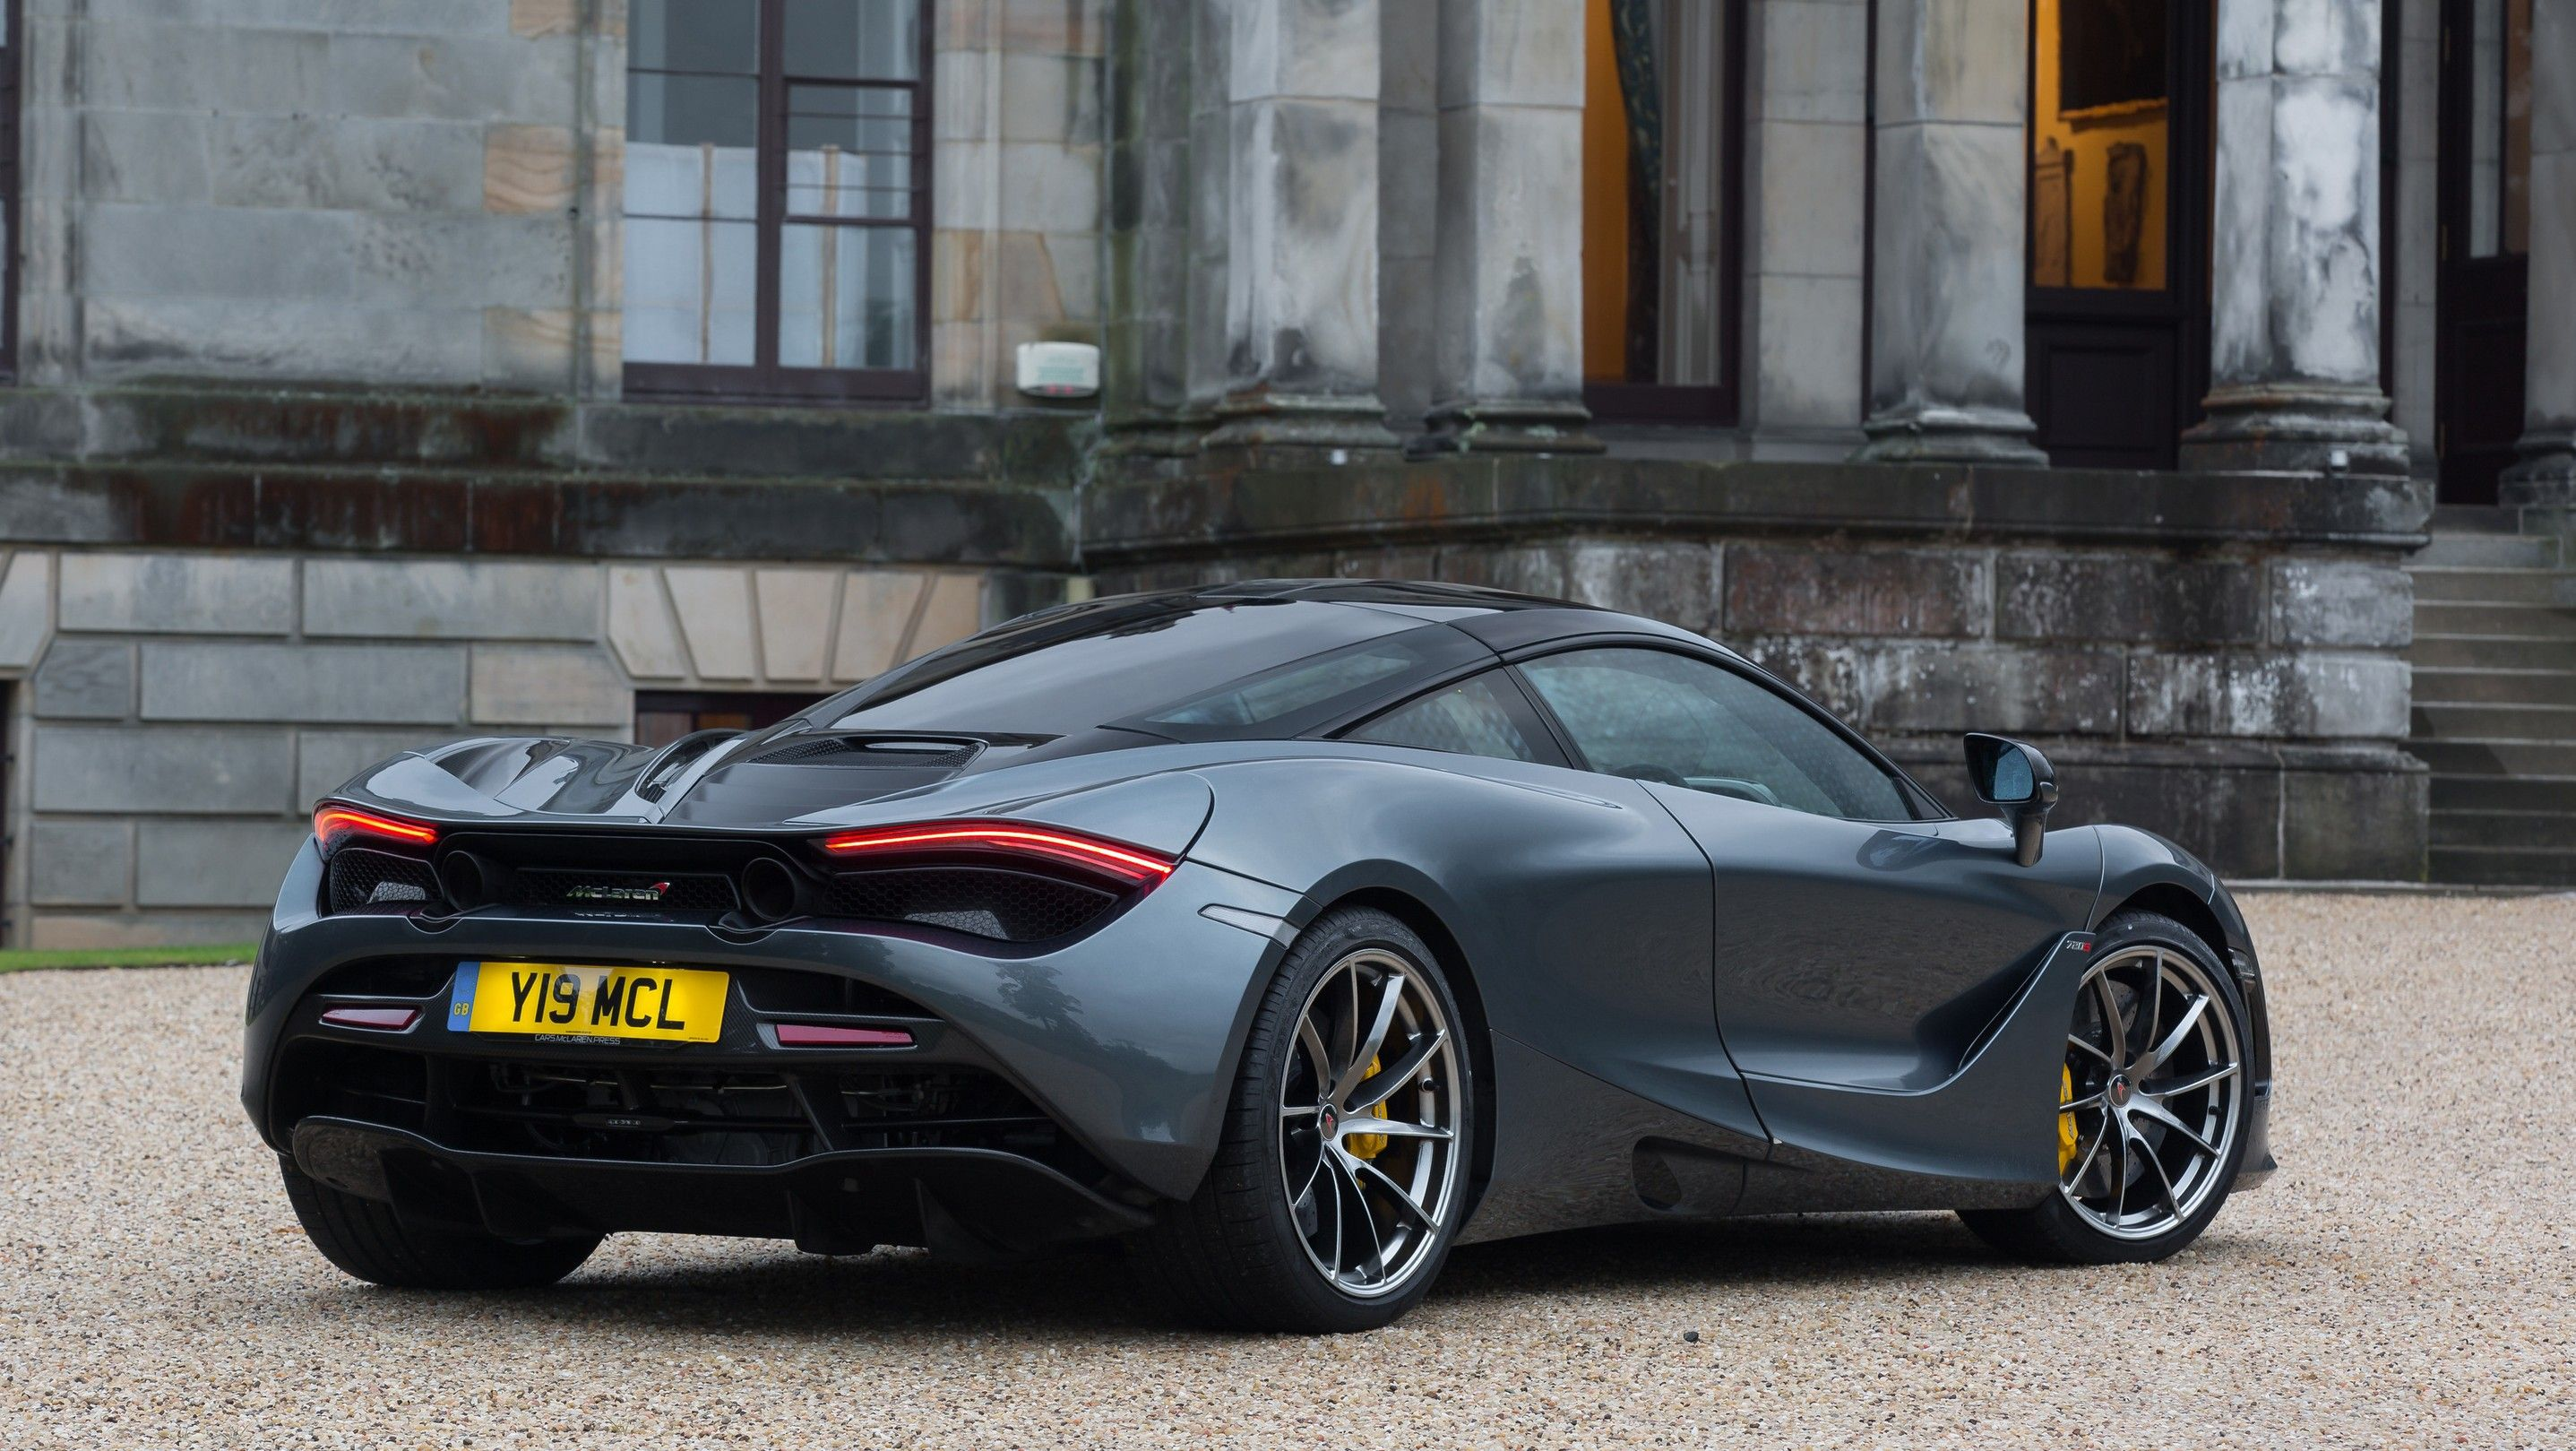 2020 Mclaren 720s coupe Rear Three-quarter View